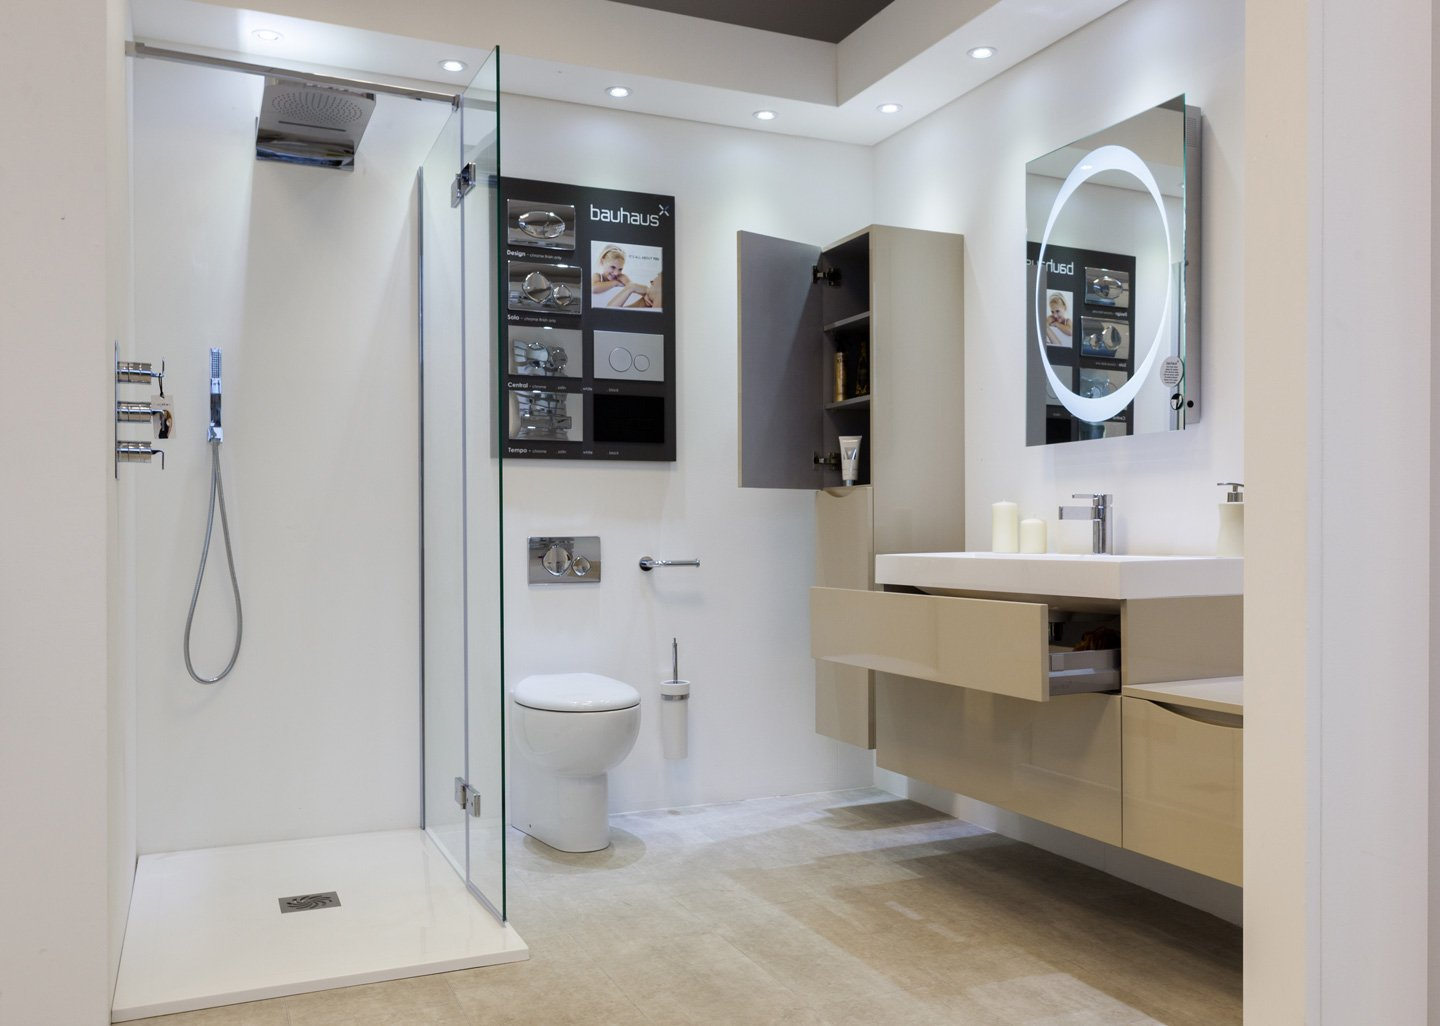 Quality bathroom shower with accessories installed